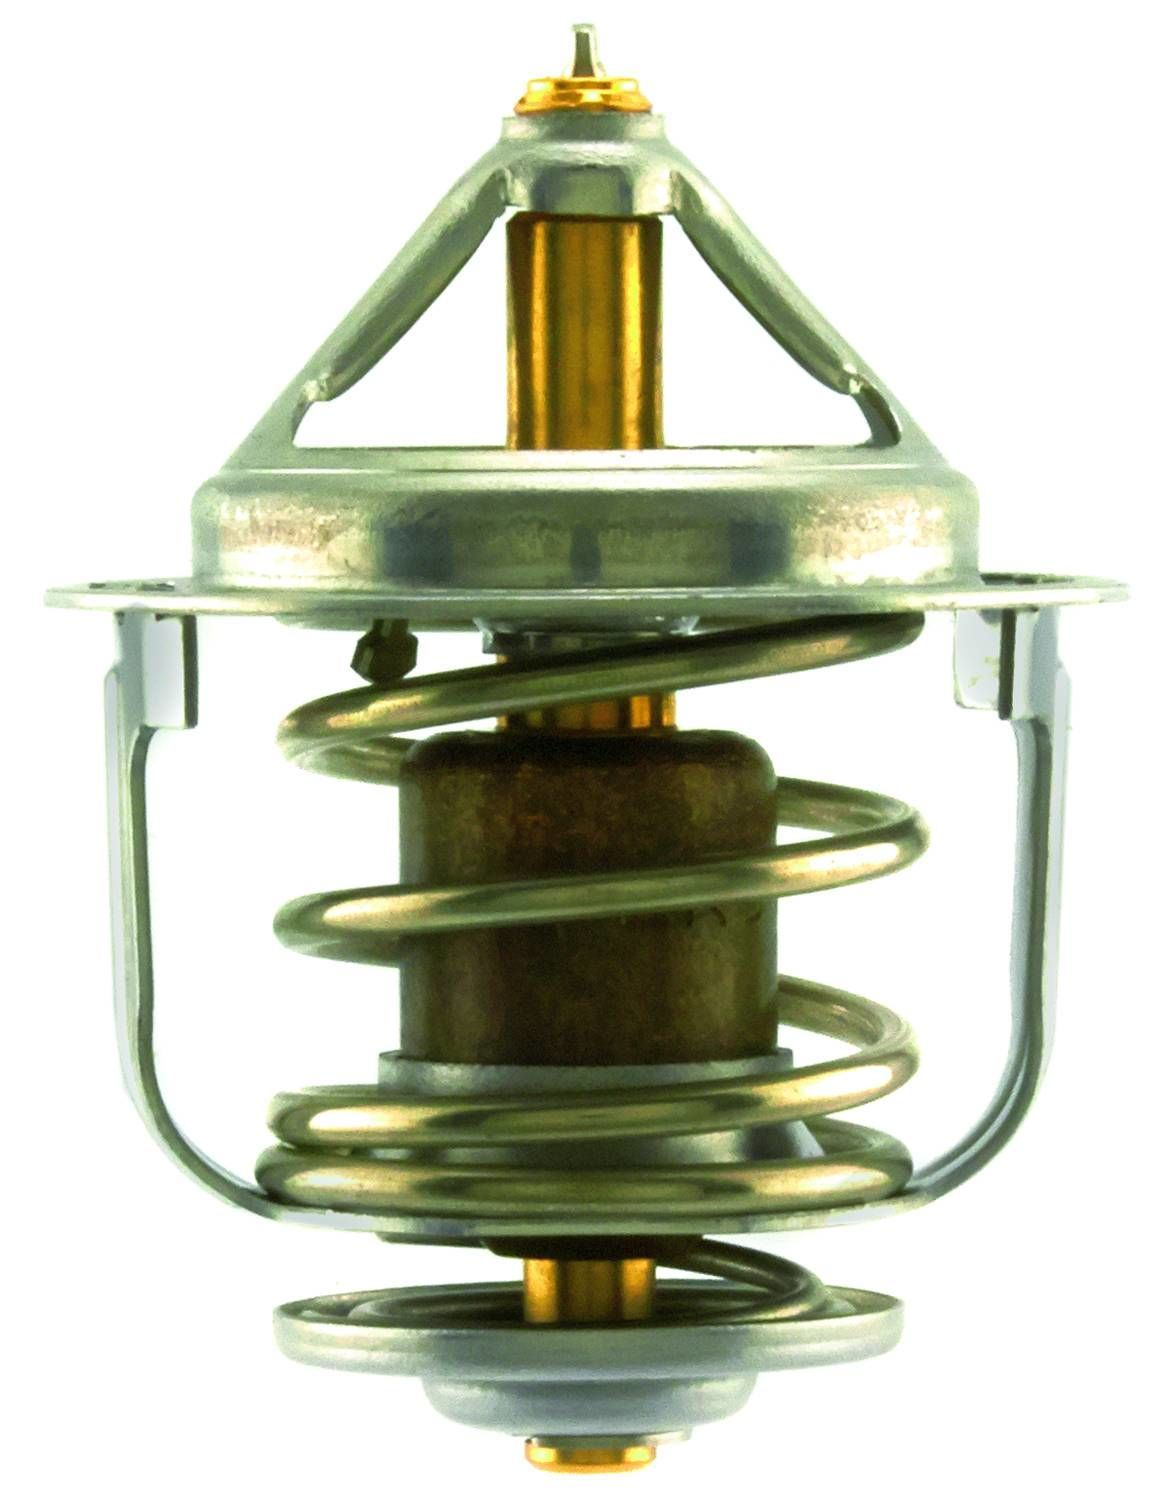 AISIN WORLD CORP. OF AMERICA - Engine Coolant Thermostat - AIS THT-008